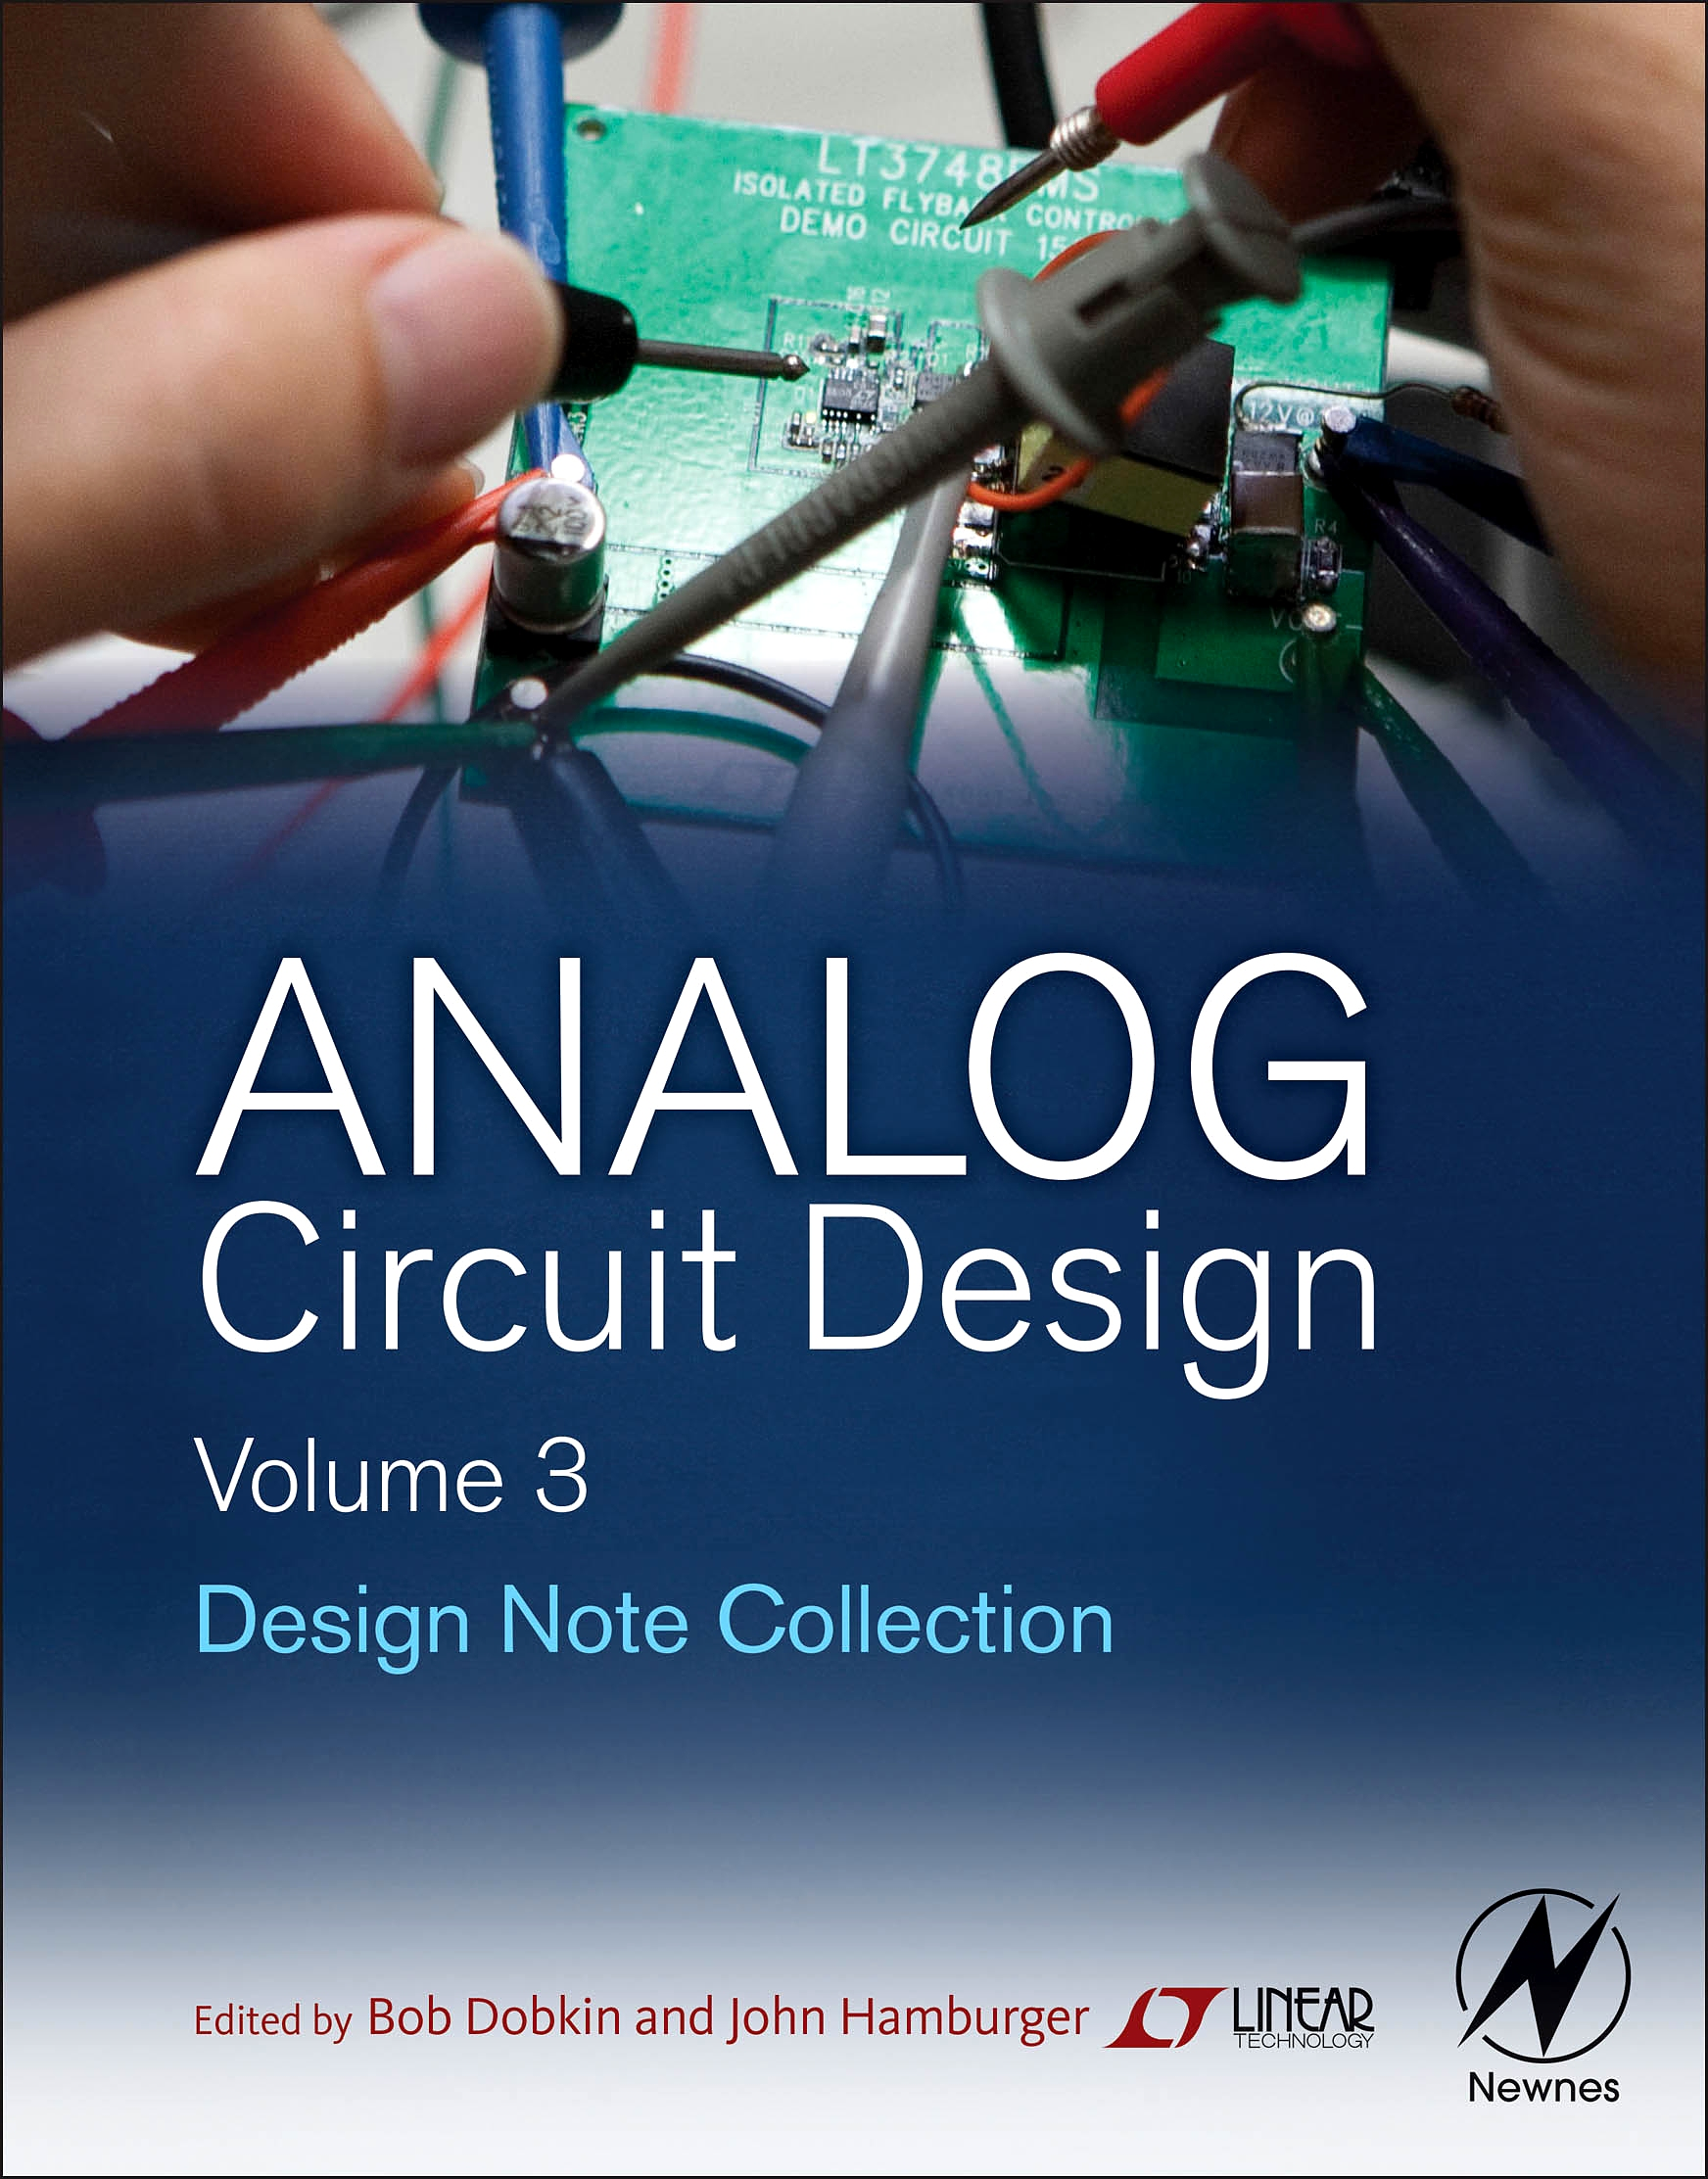 Elsevier Publishes Analog Circuit Design Volume Three And